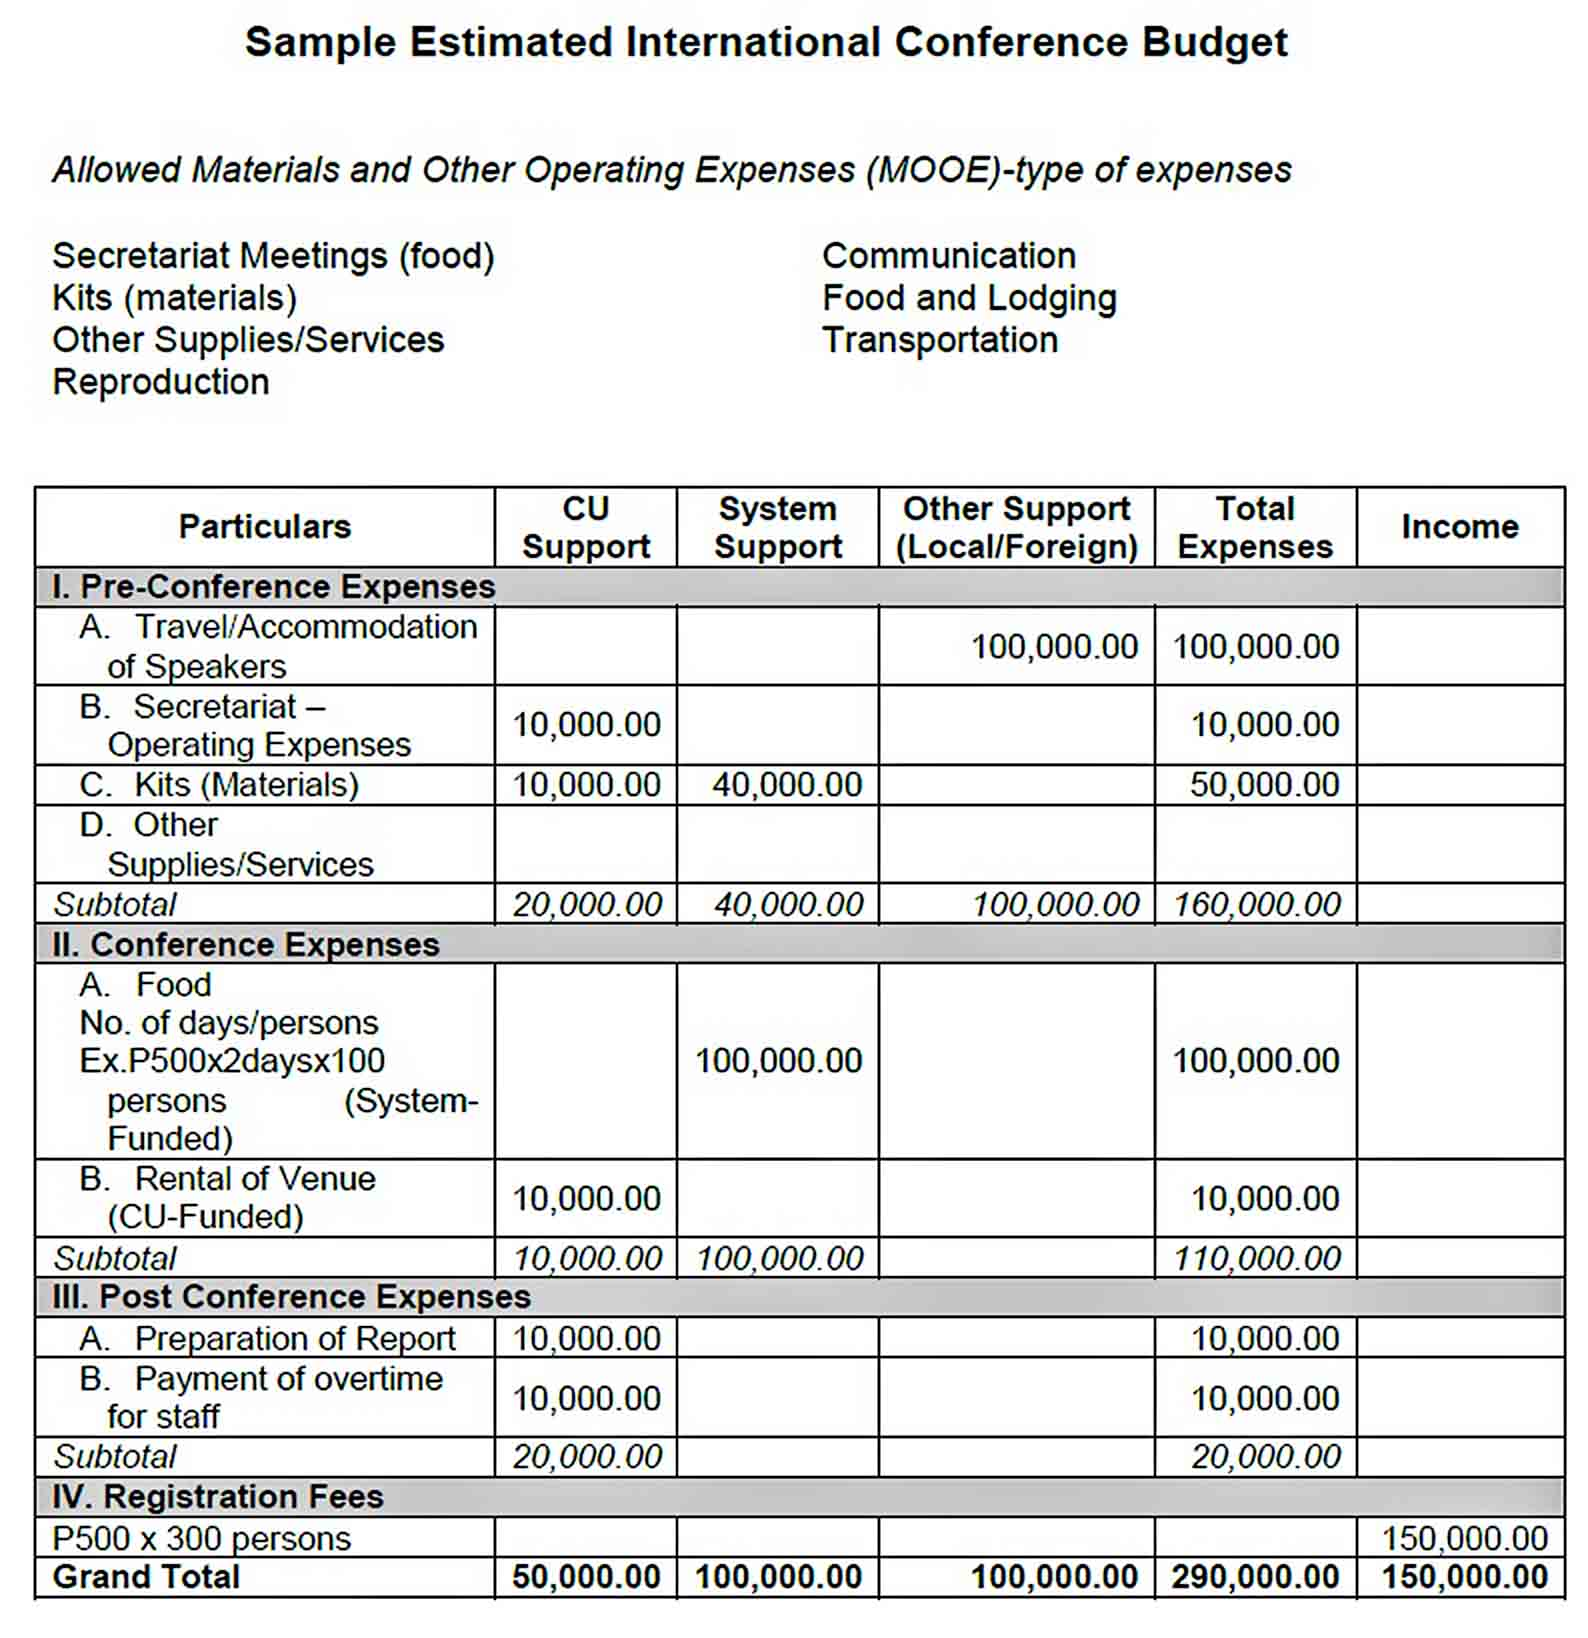 Sample Estimated International Conference Budget sample